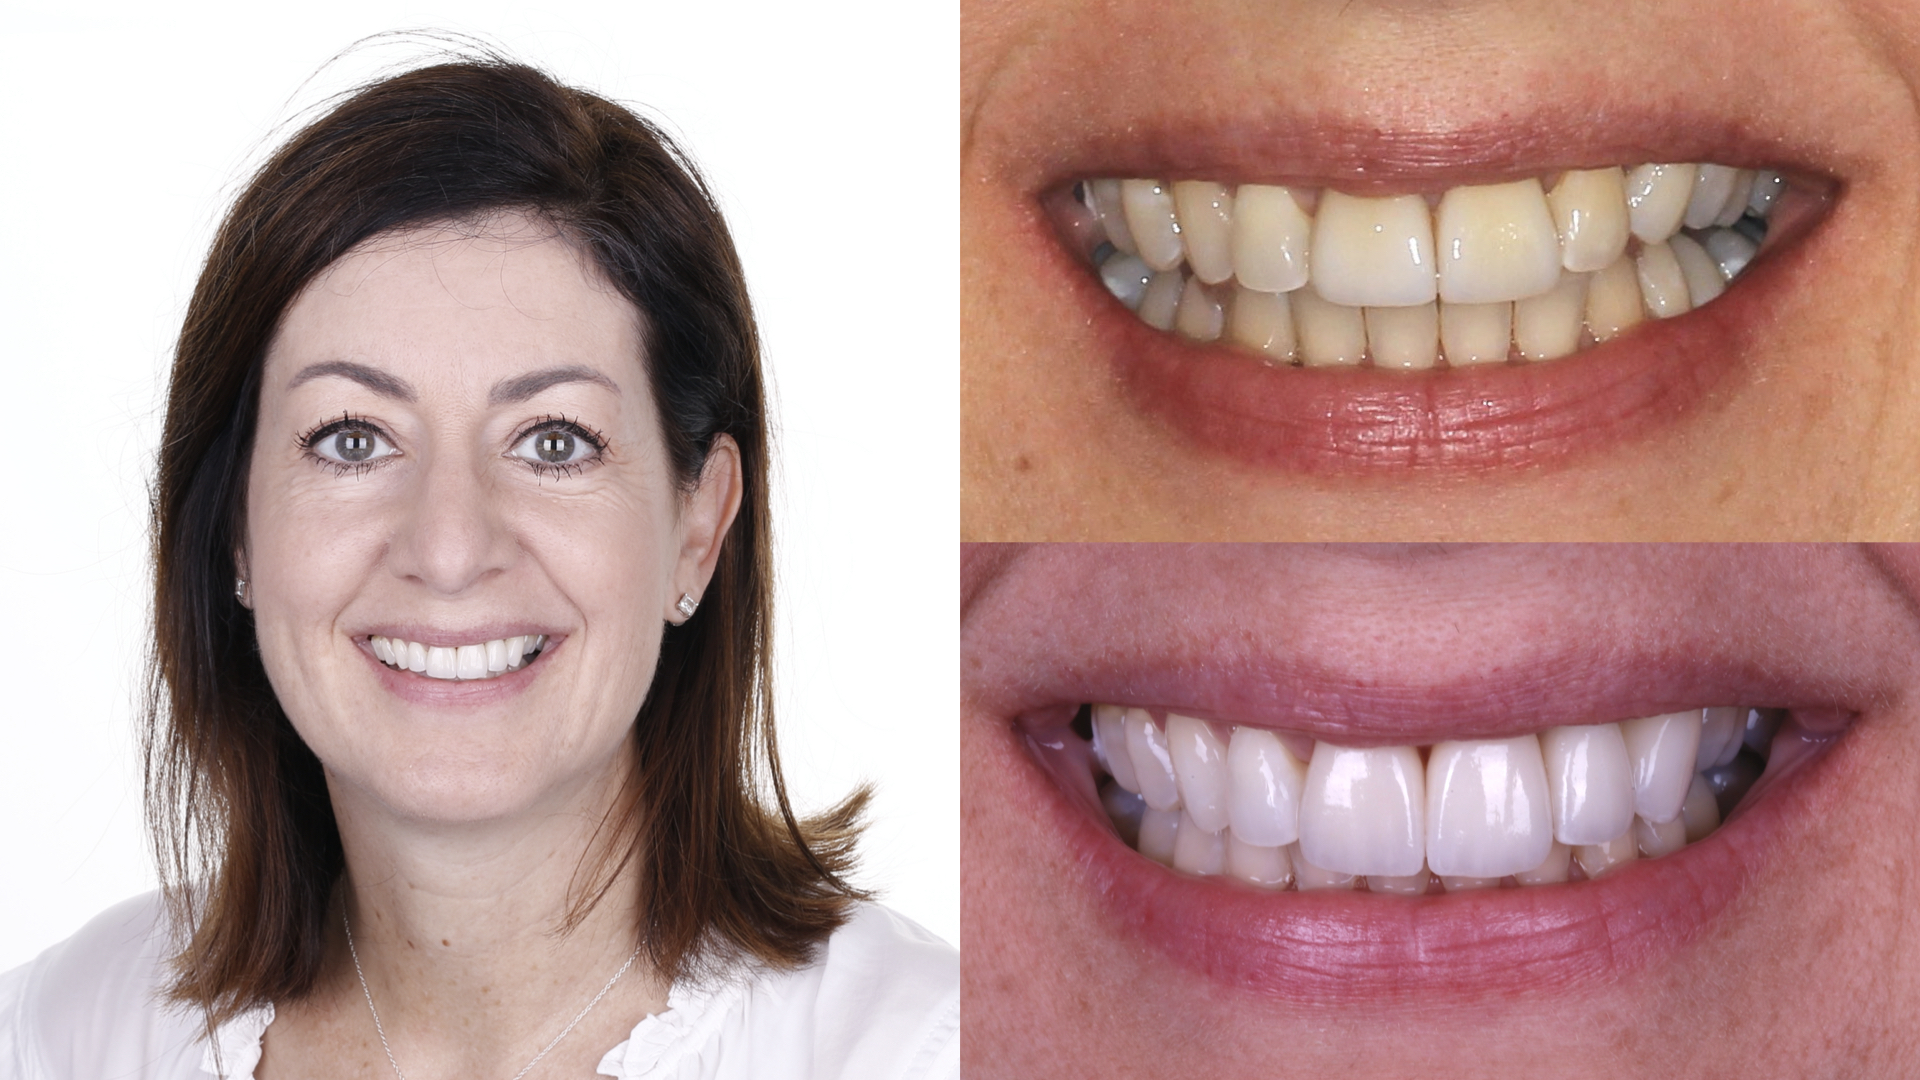 dental implant. invisalign. porcelain veneers crowns. whitening